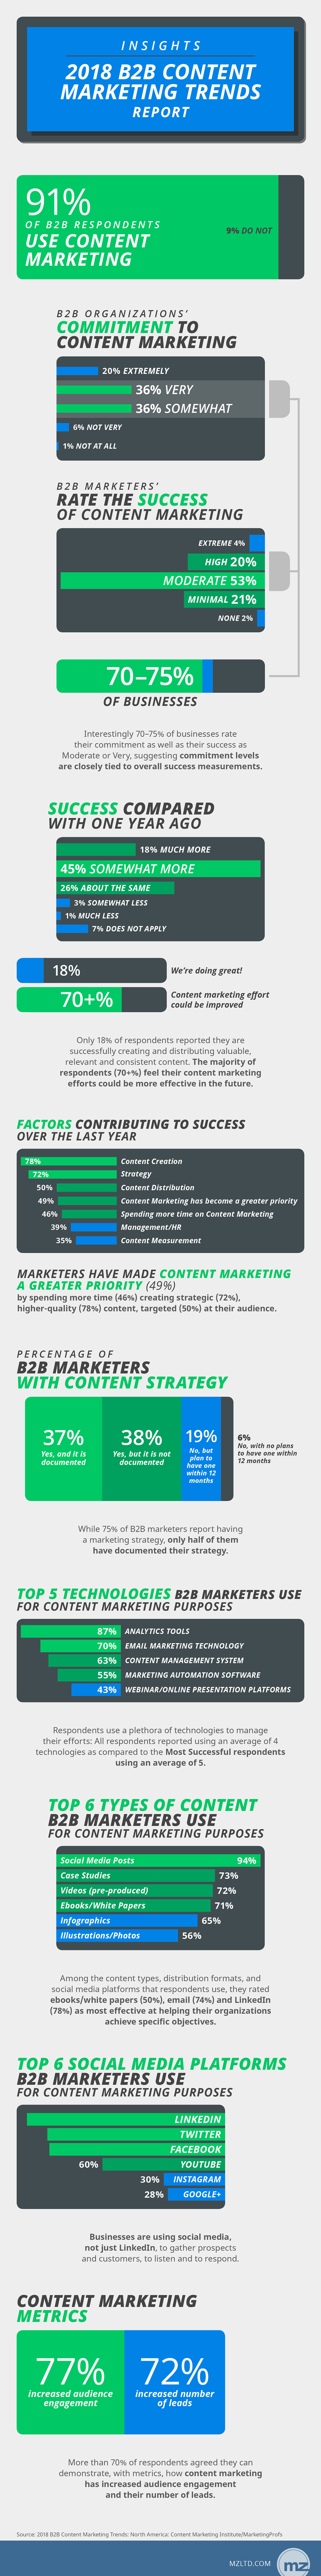 Insights from the 2018 B2B Content Marketing Trends Report